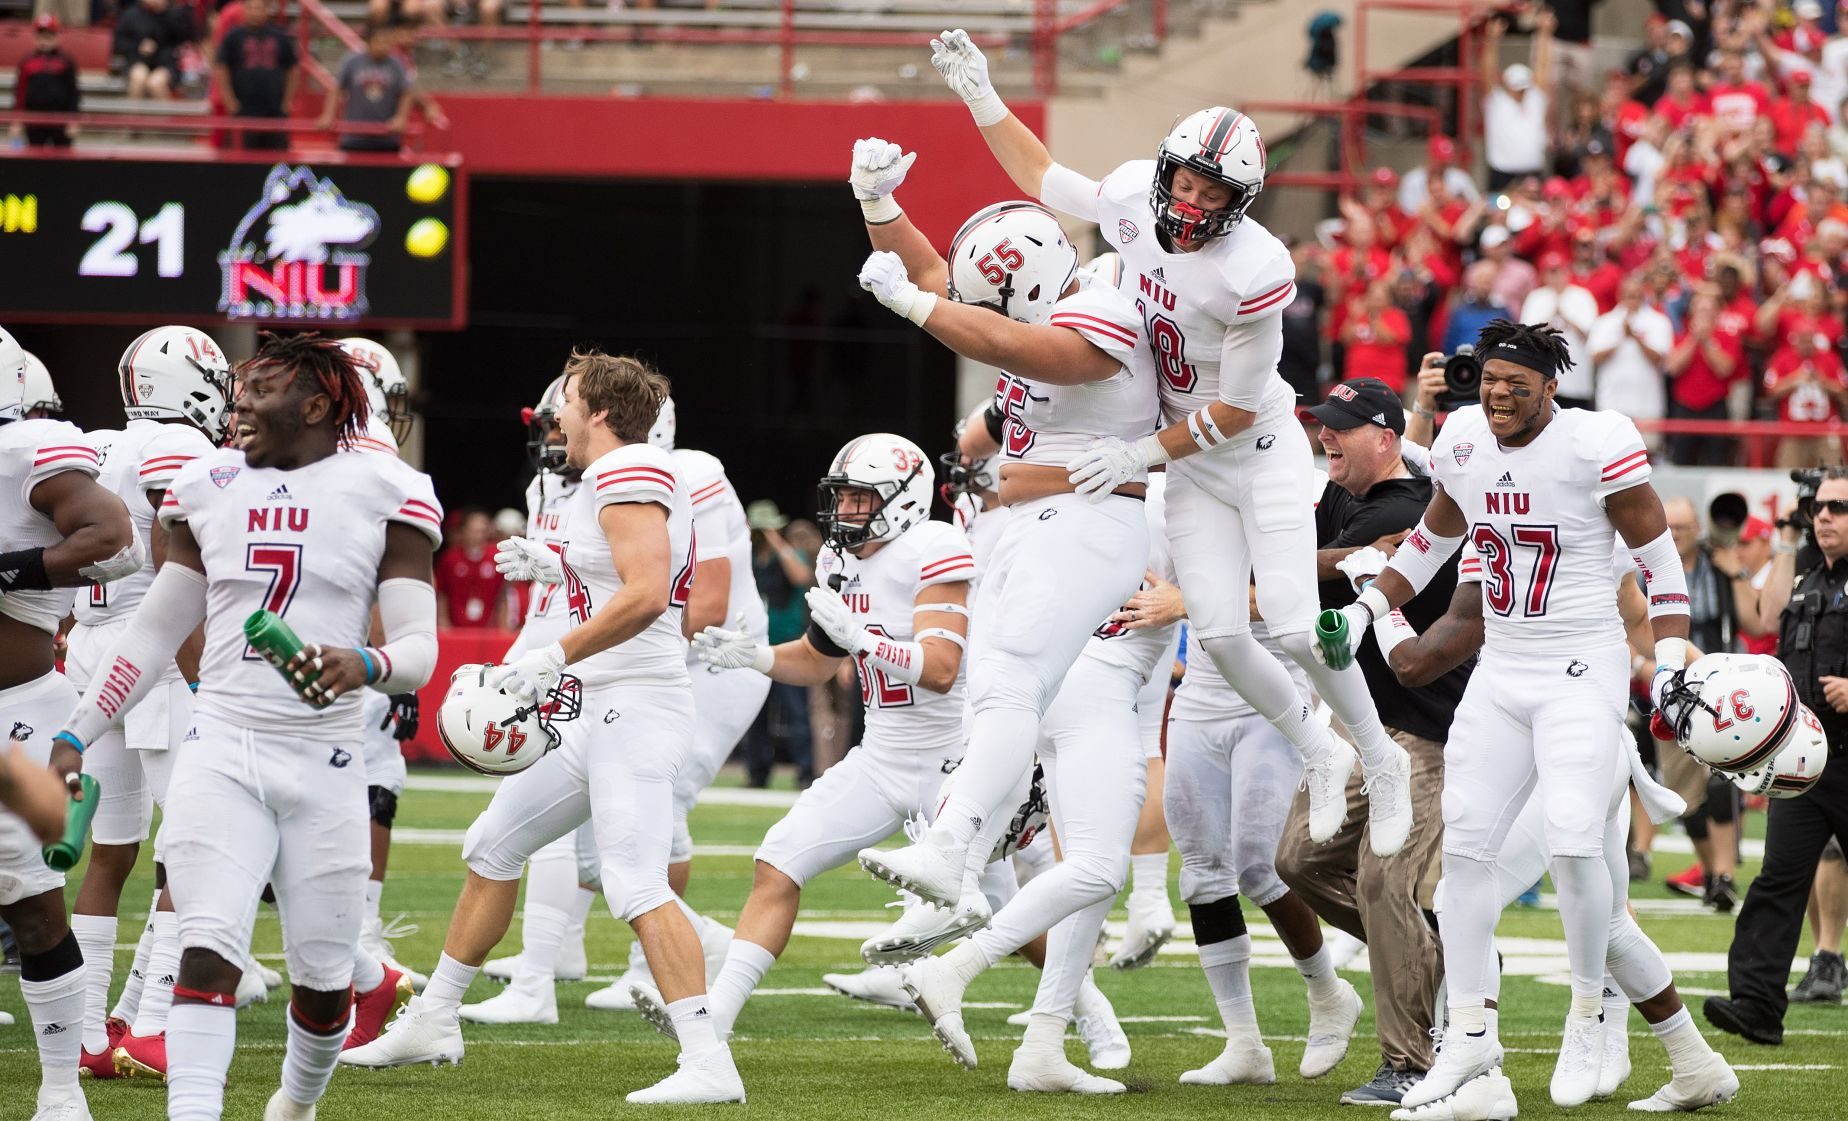 Nebraska Preview: Cornhuskers Host Rutgers